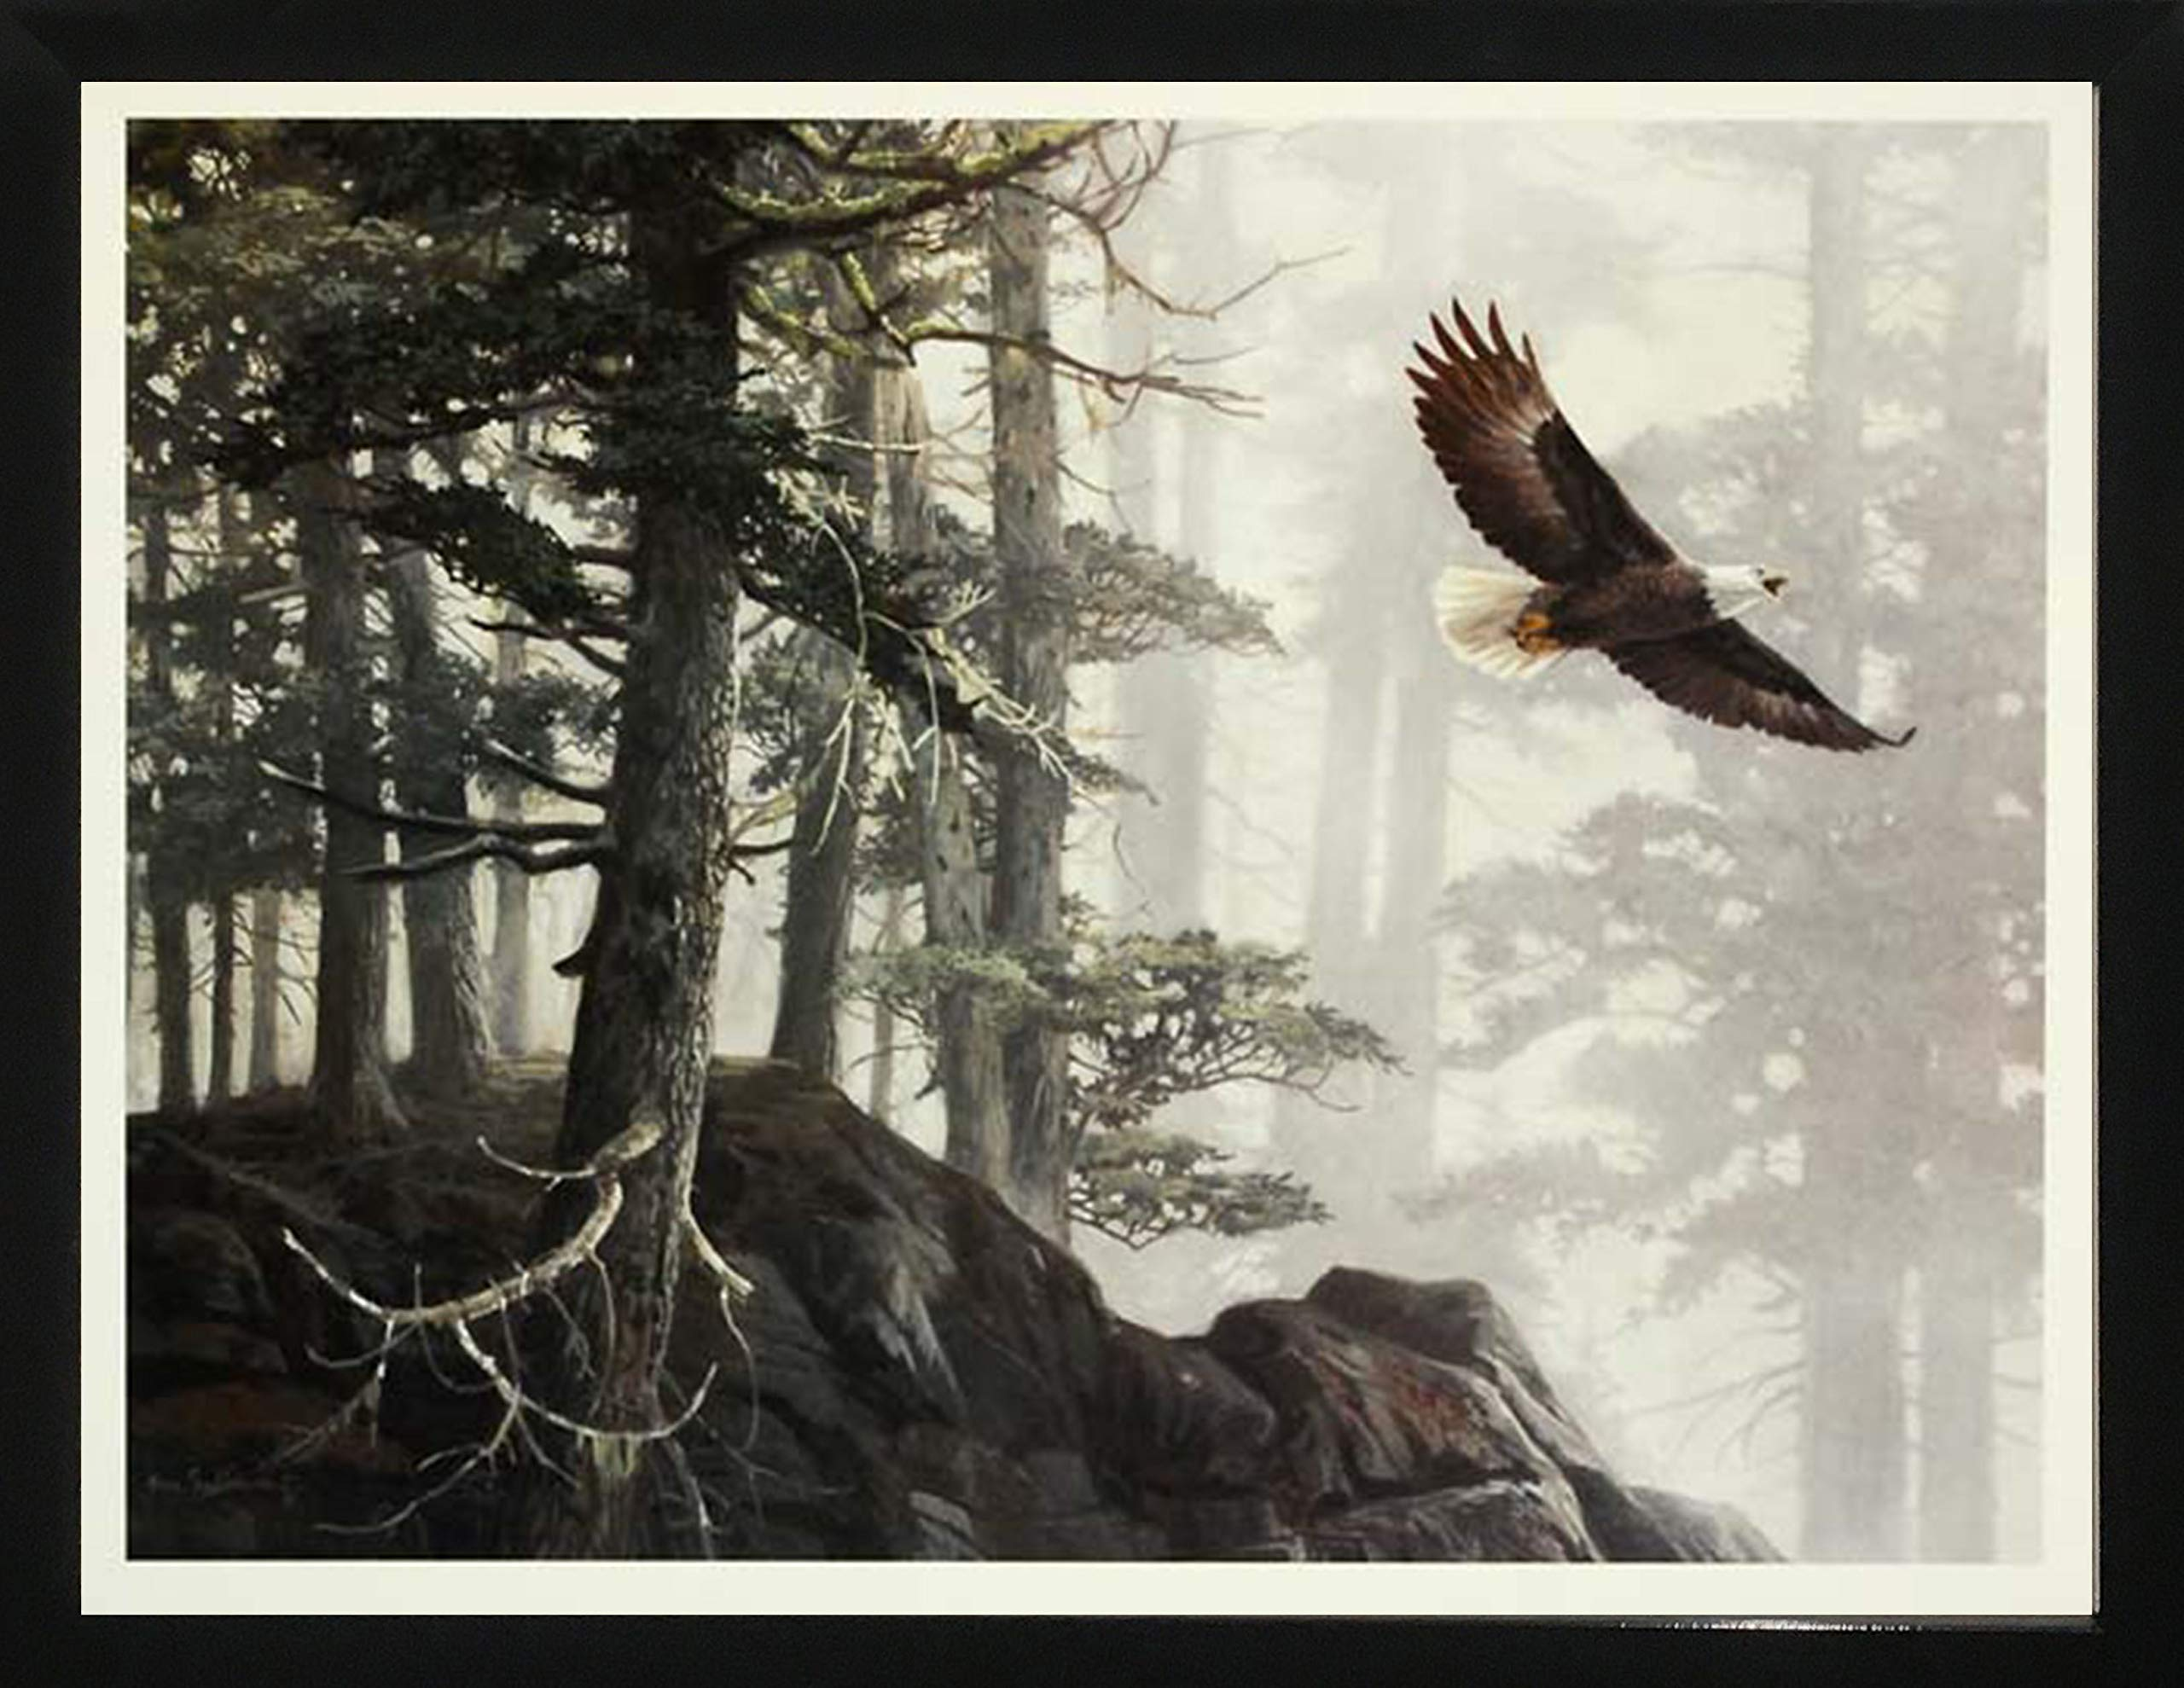 Framed Art''Flying High'' by Alan Sakhavarz by